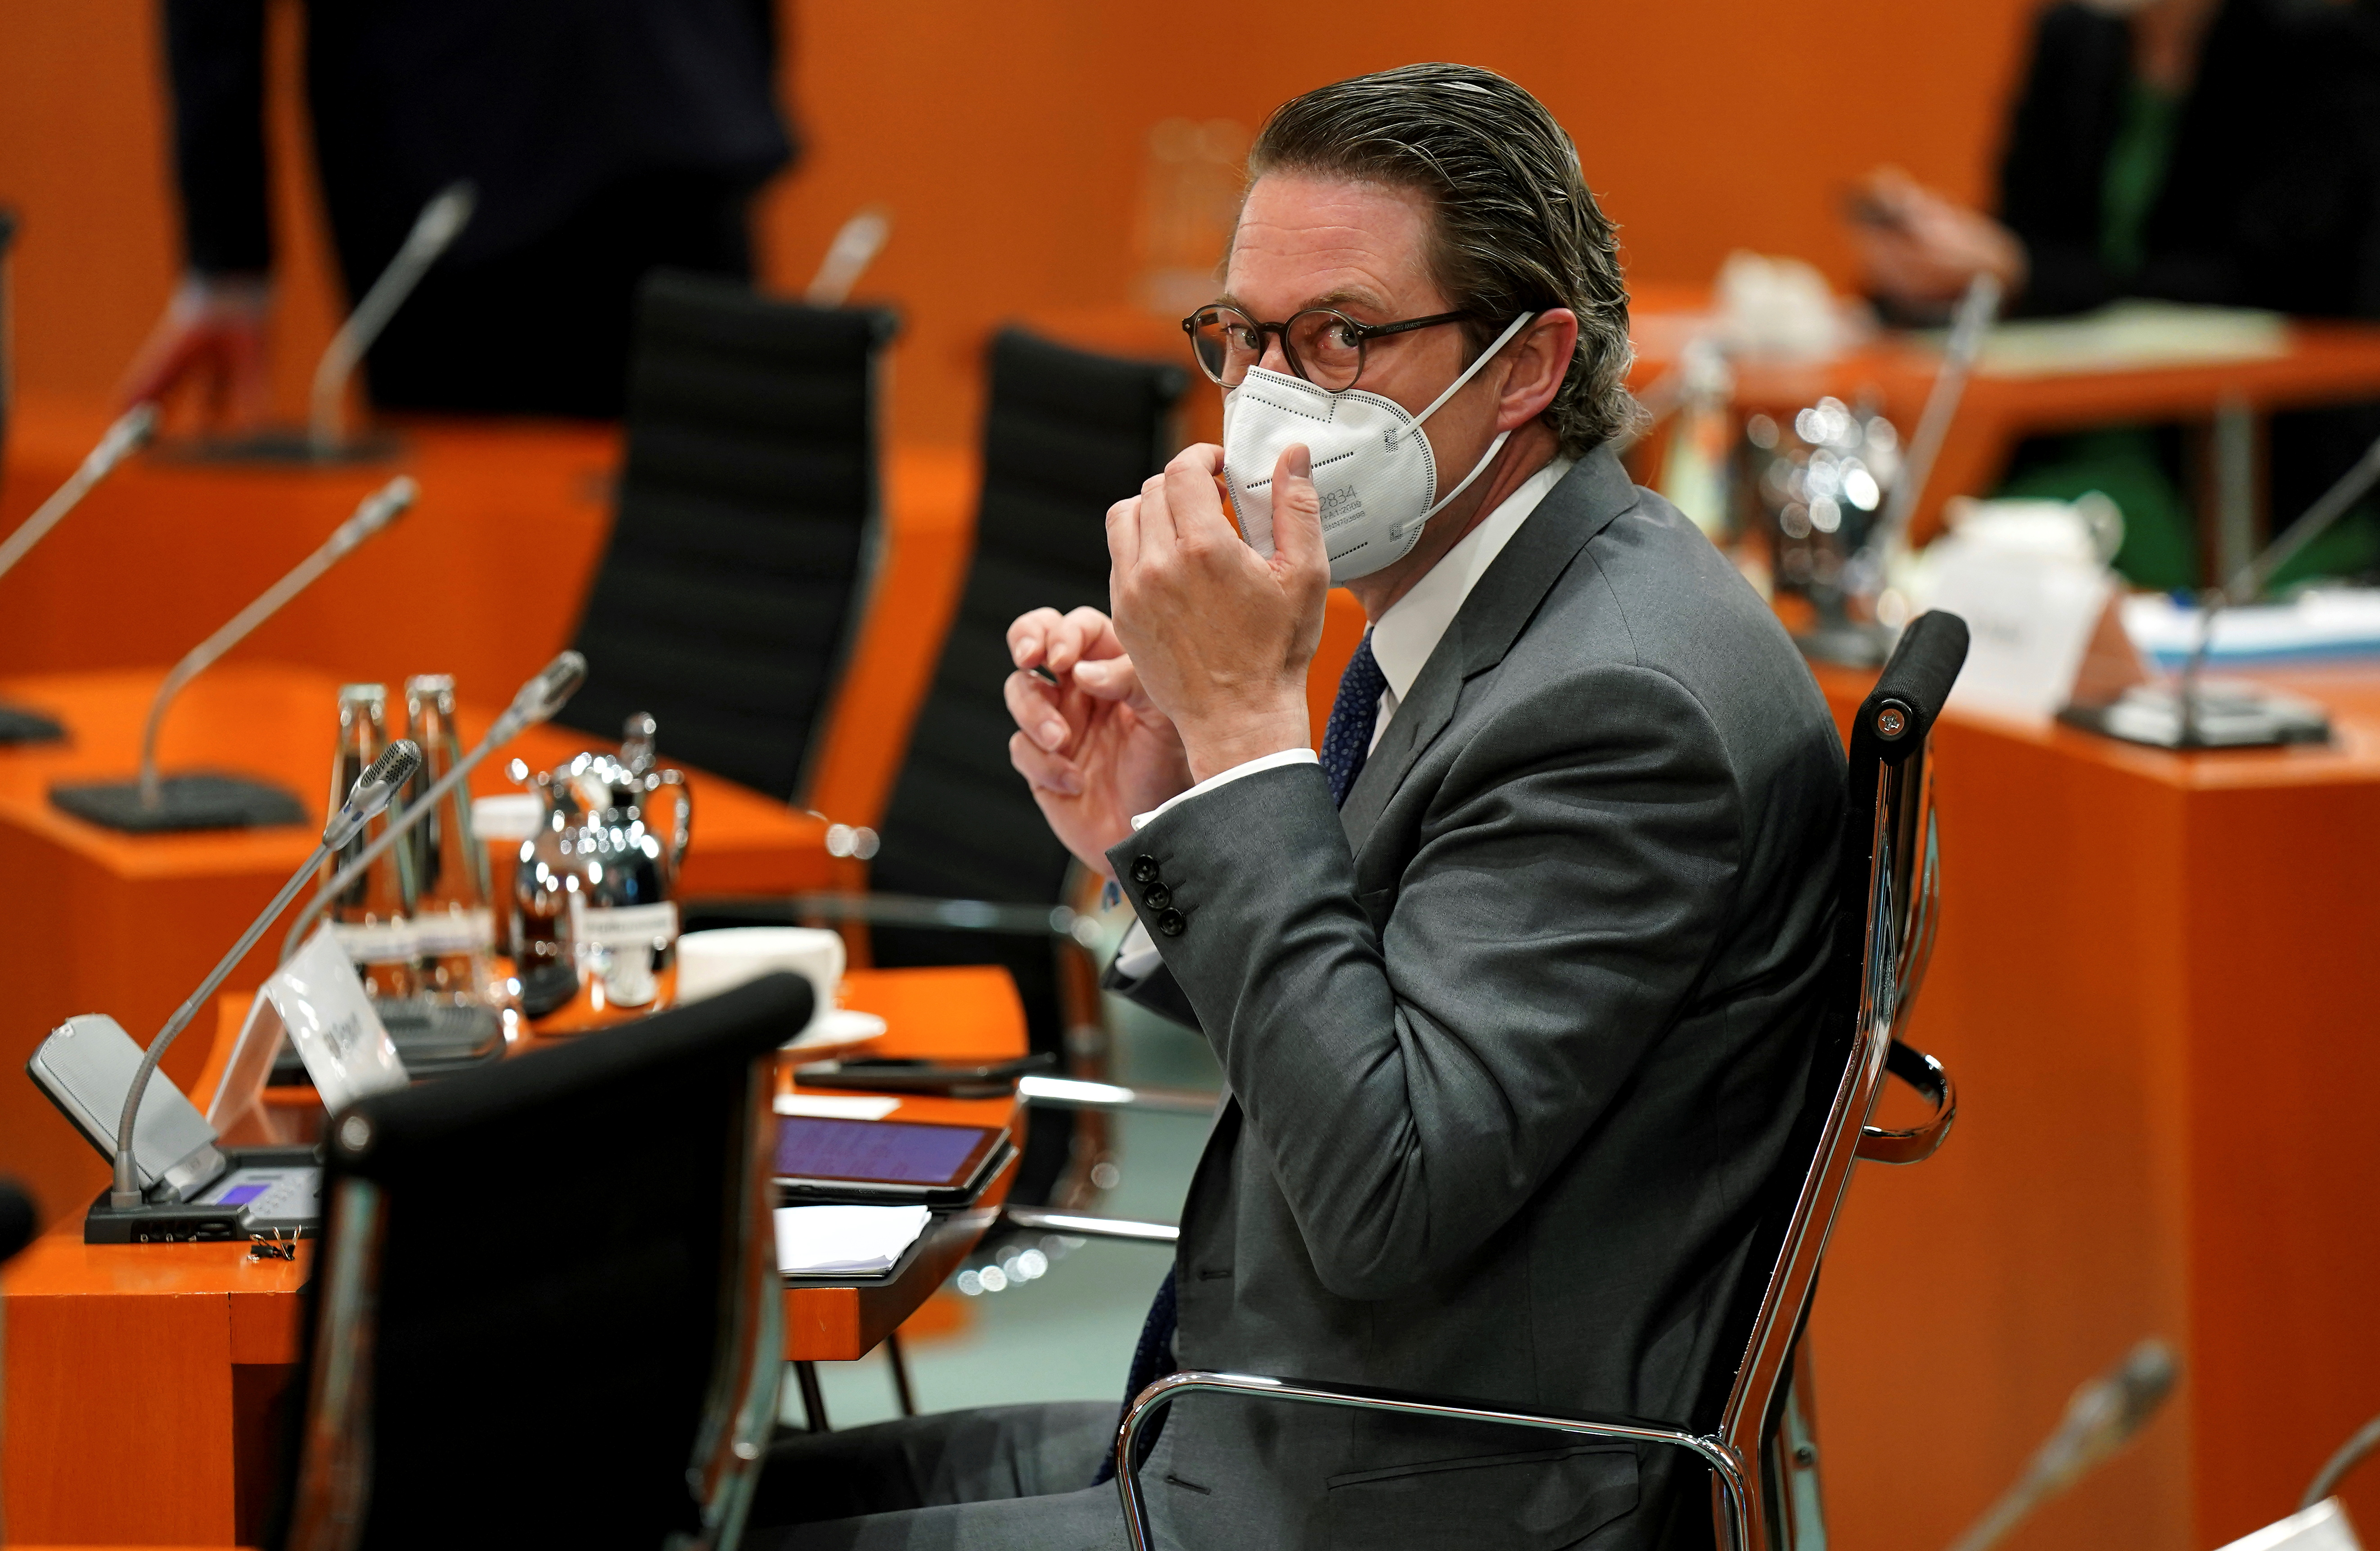 German Transport Minister Andreas Scheuer adjusts his face mask as he attends the weekly cabinet meeting at the Chancellery in Berlin, Germany May 12, 2021. Michael Sohn/Pool via REUTERS